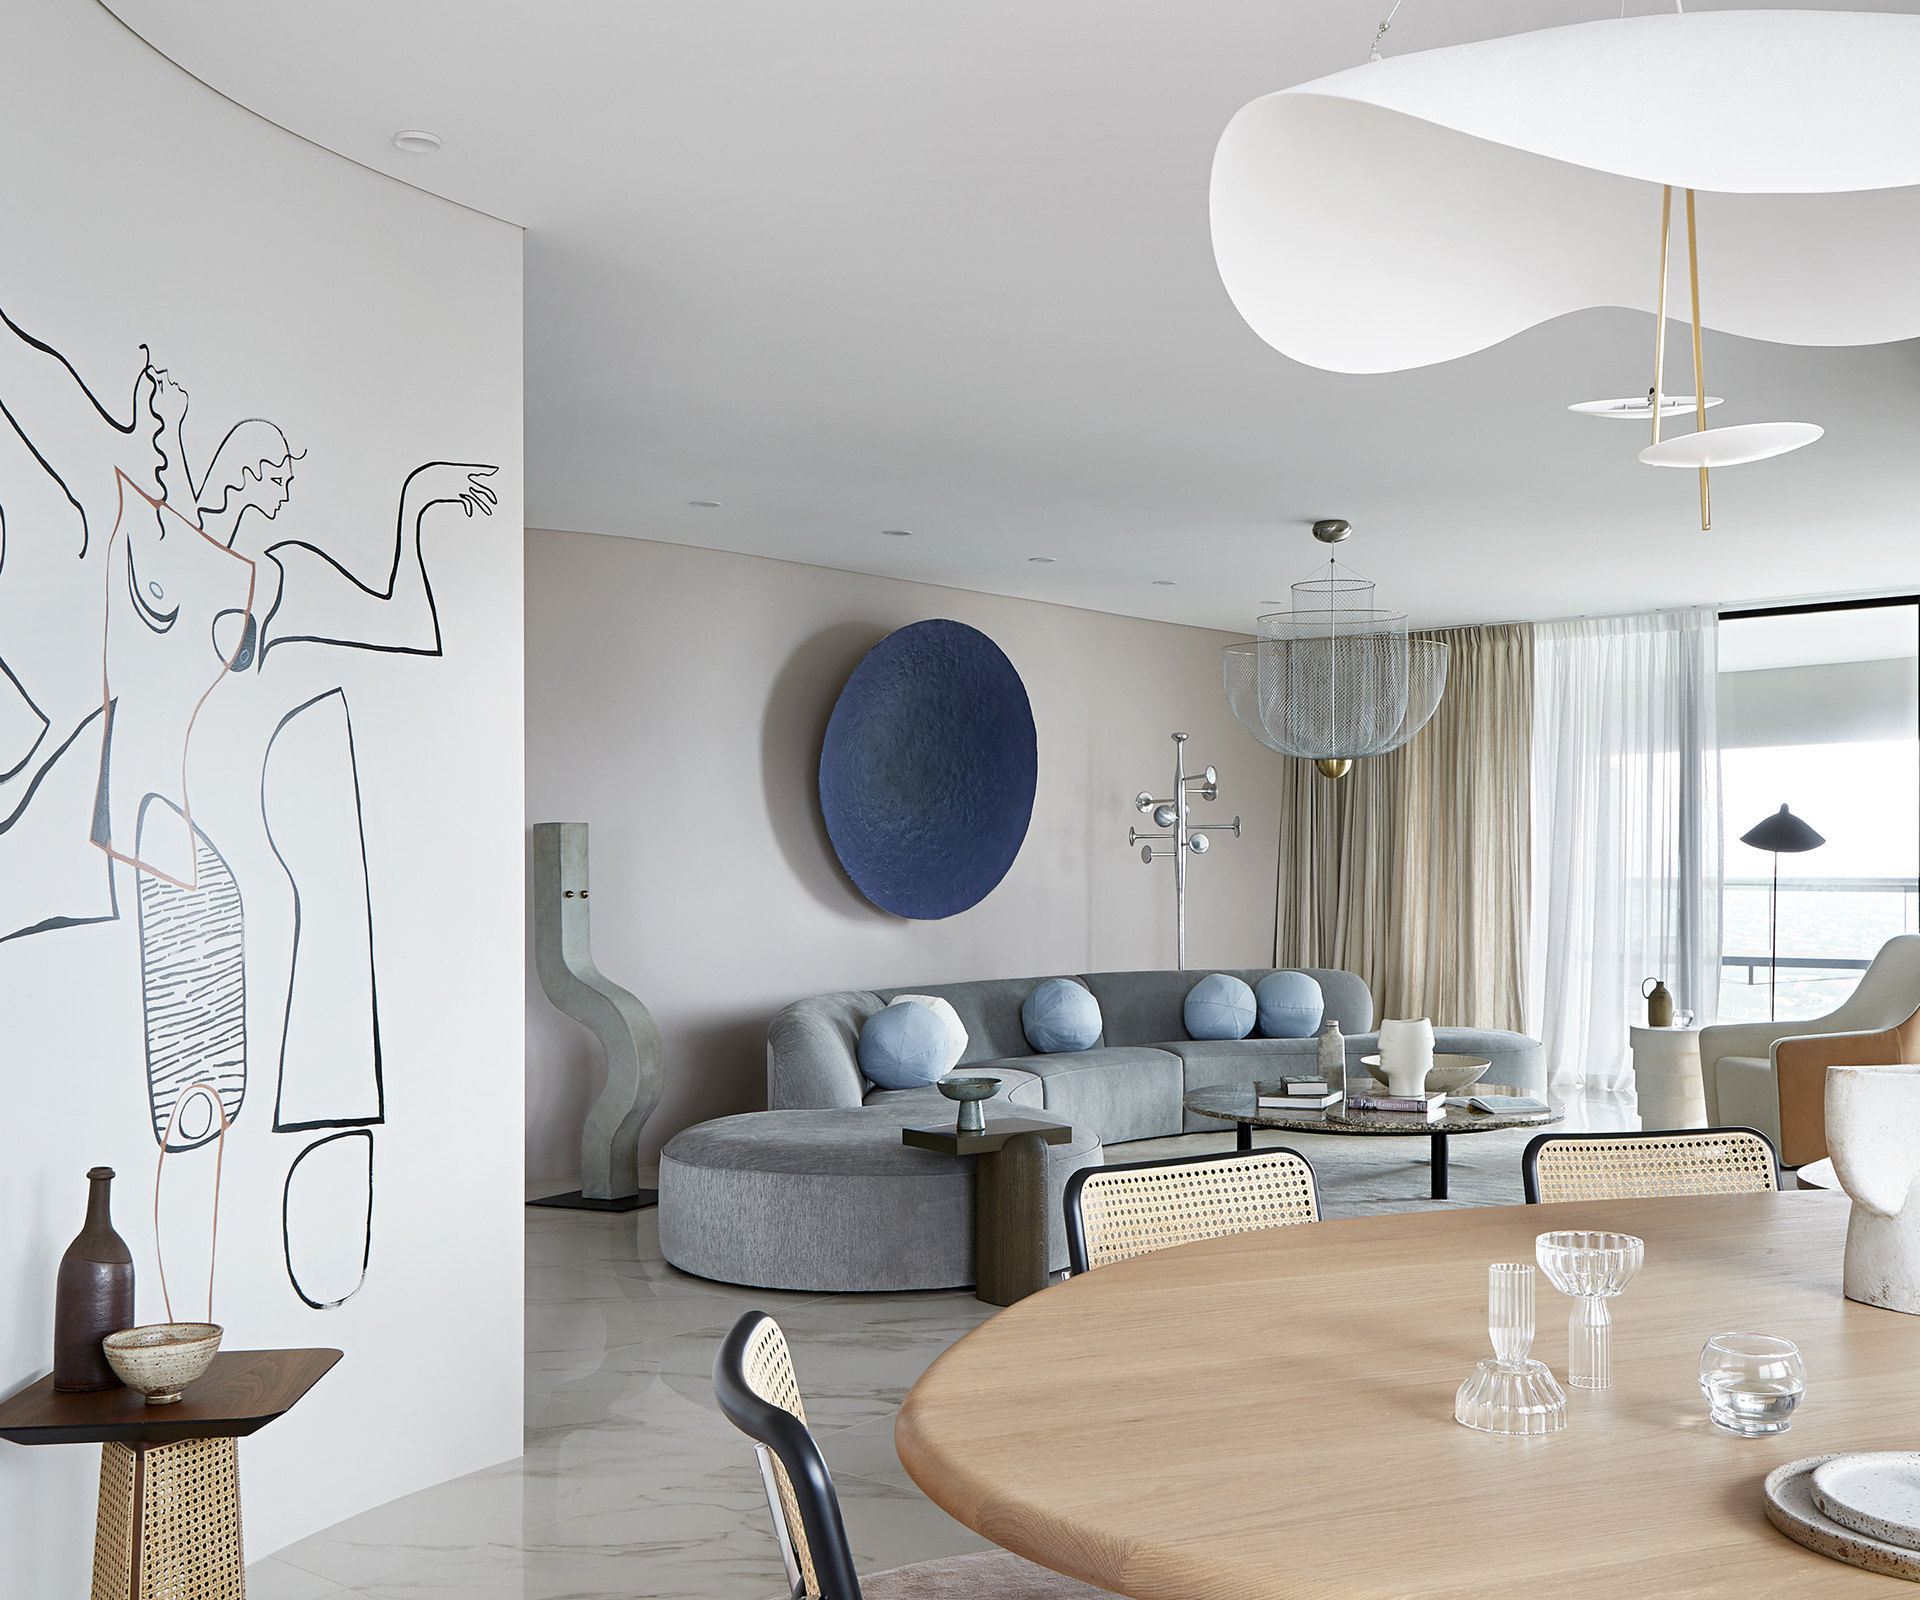 luxurious apartment filled with art